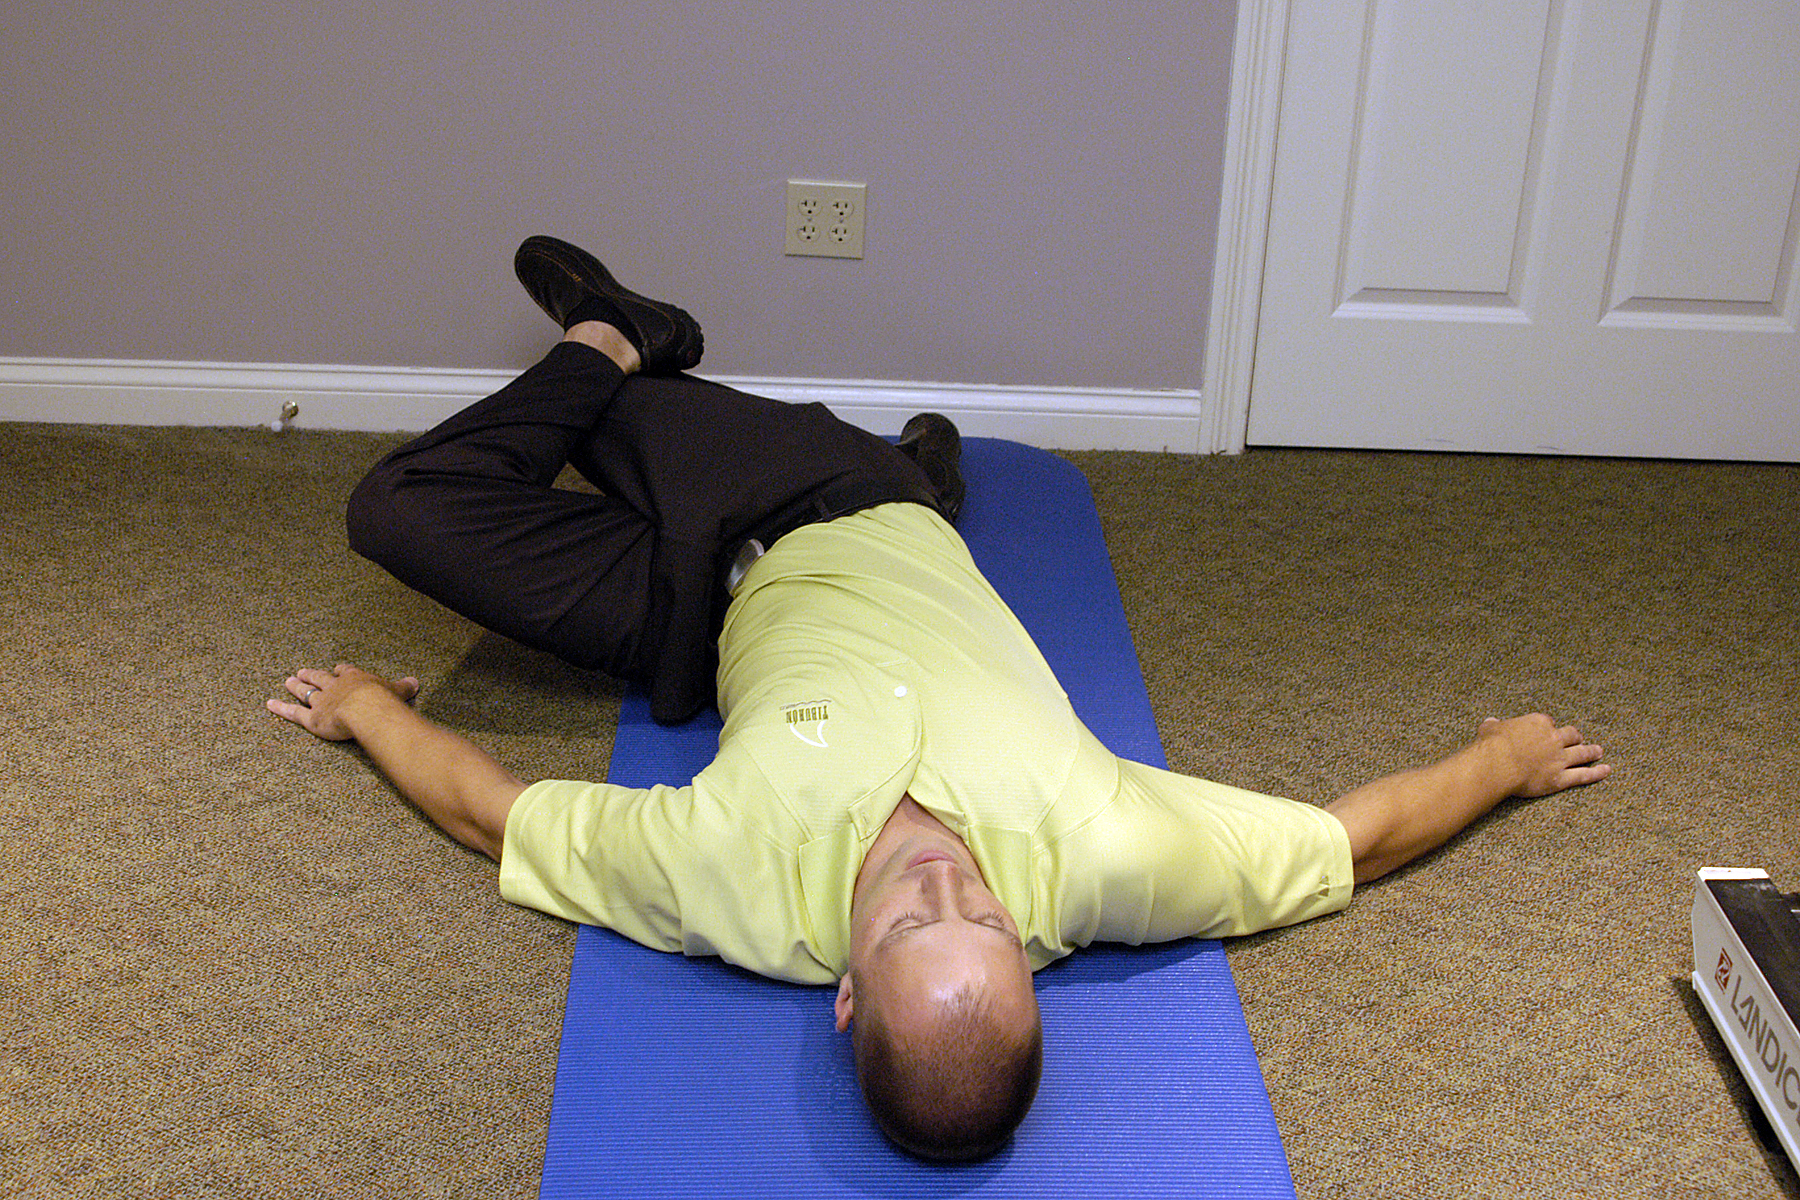 4. Repeat, this time rotate left, left foot on top of right knee, hold 10 seconds